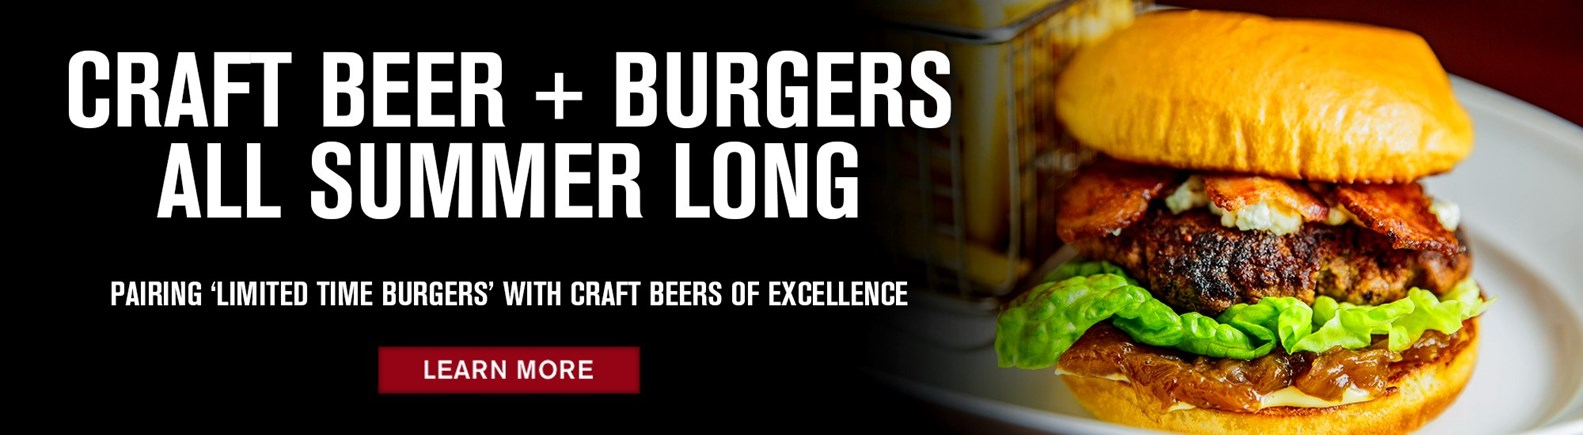 https://assets.marcusapps.com/files/outlets//mason-street/events/MSG-BeerBurg_2000x500.jpg?width=1583&height=400&mode=crop